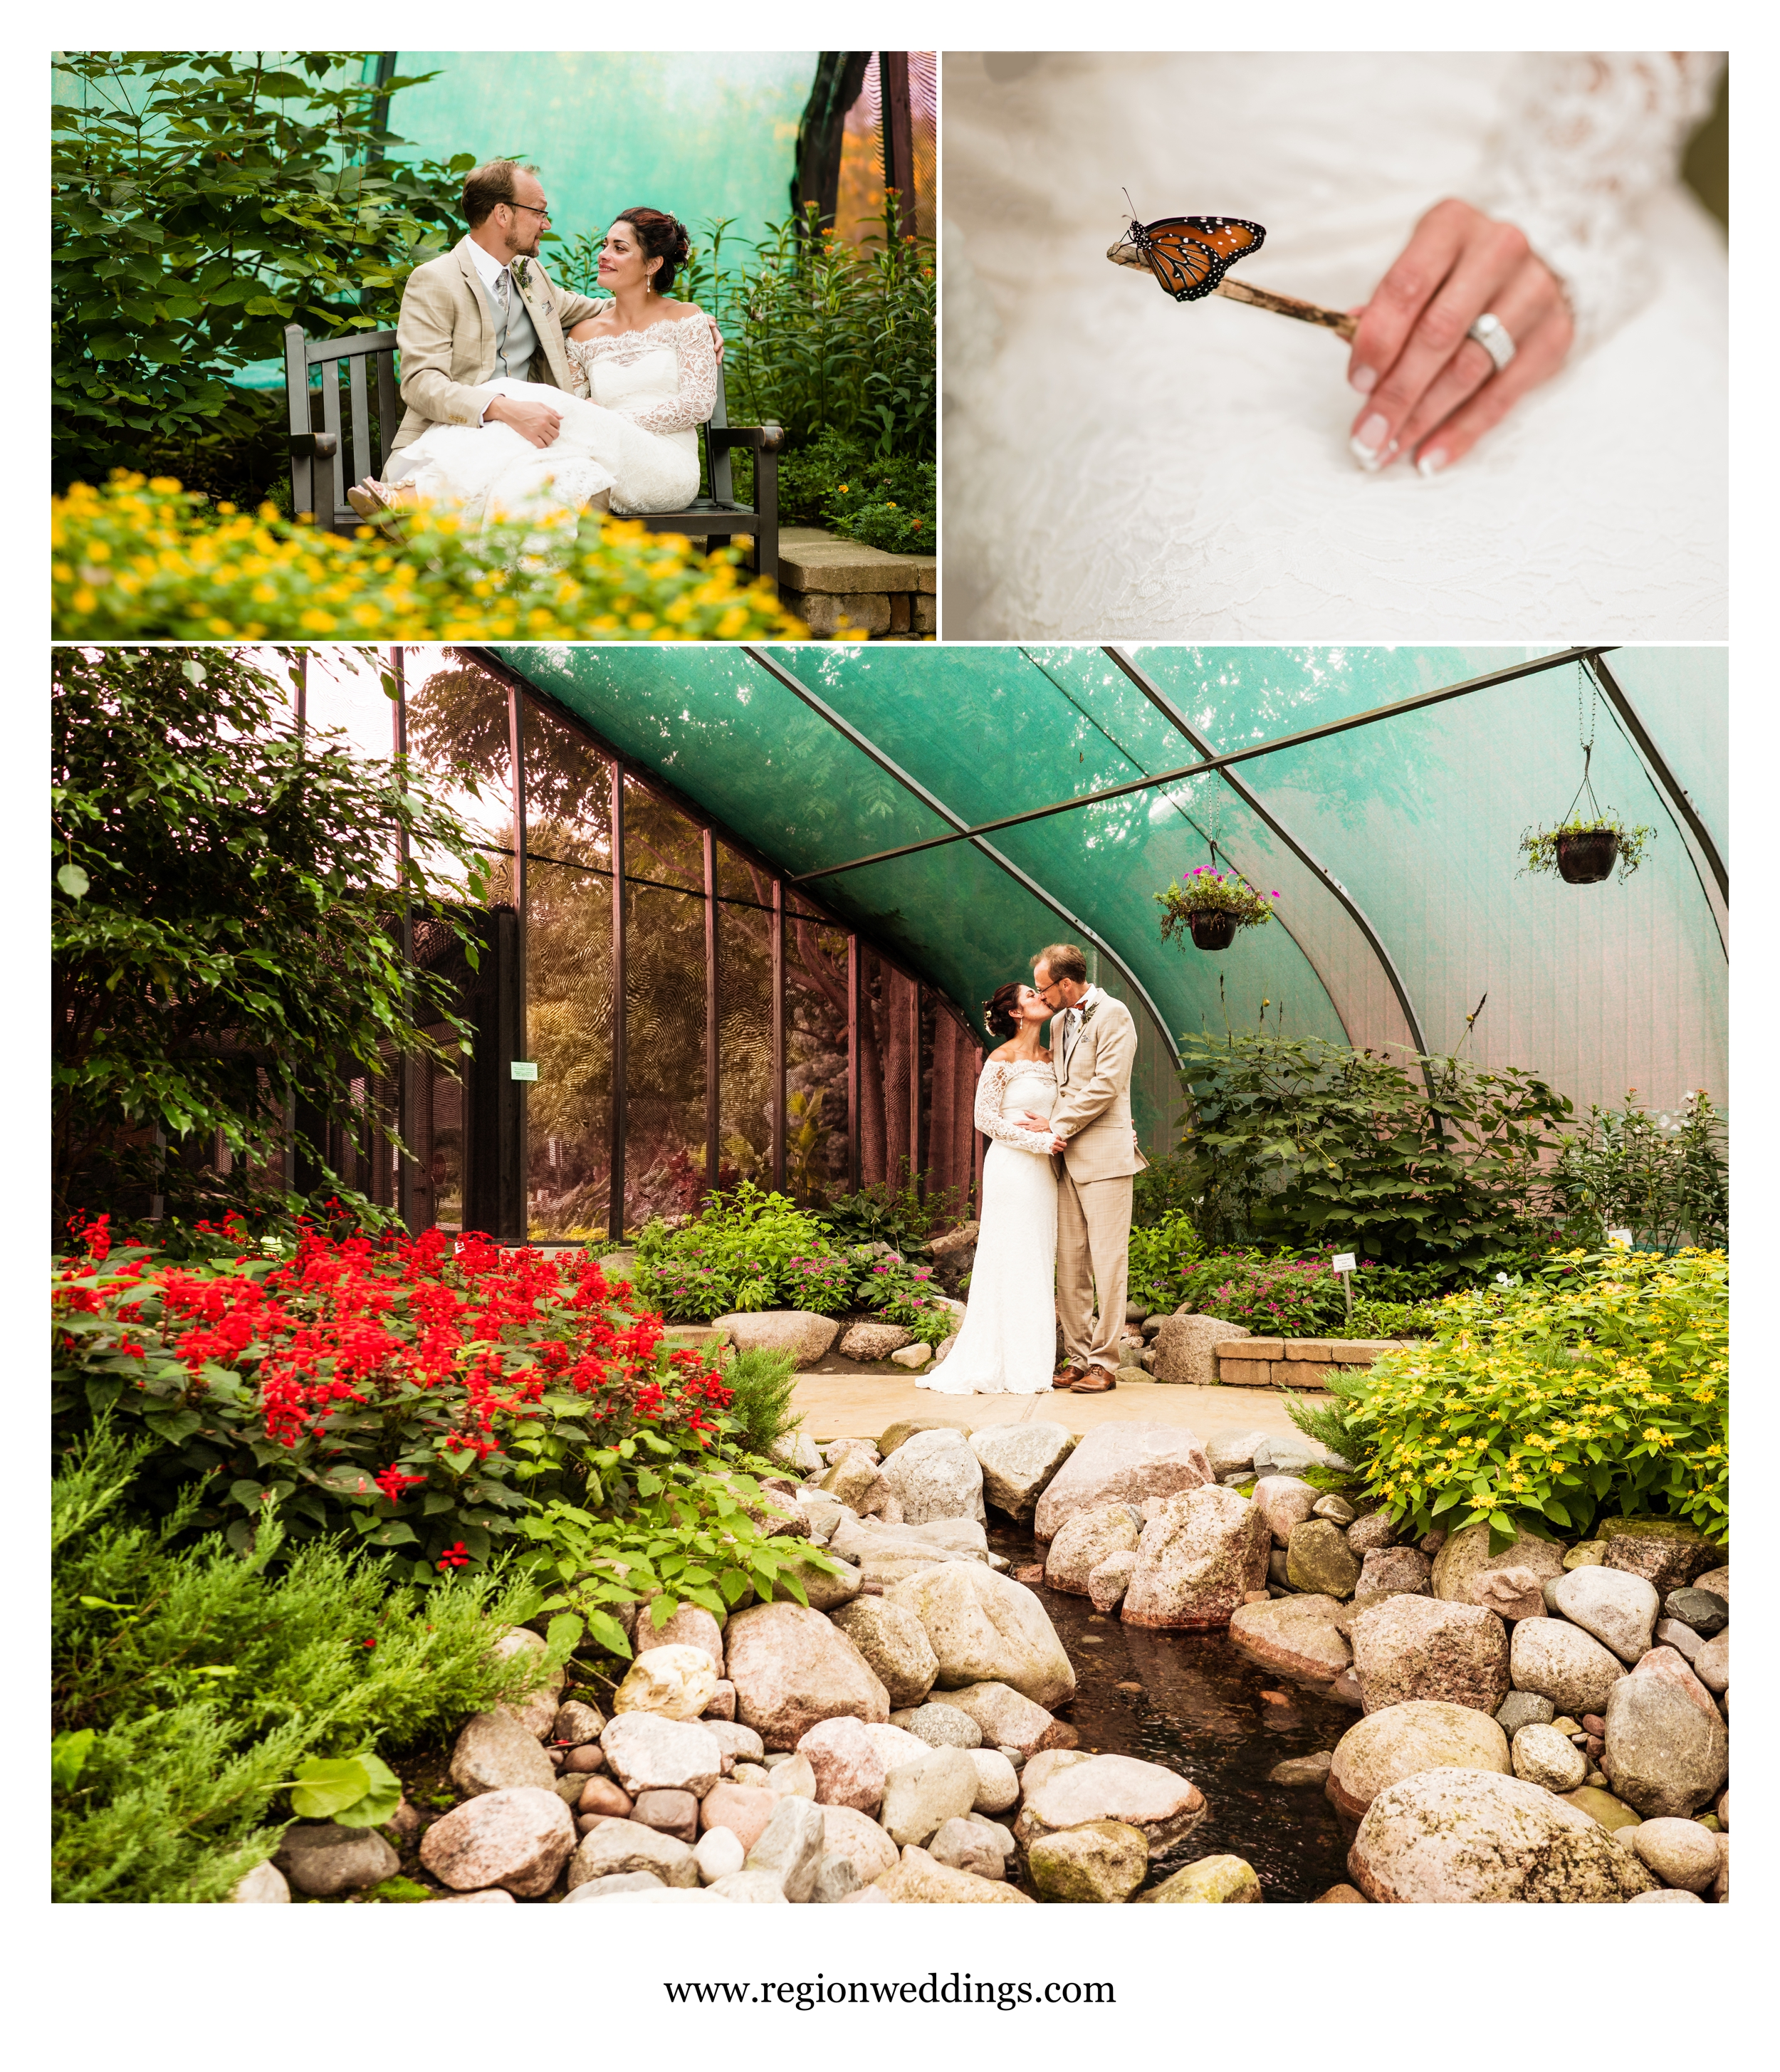 Bride and groom photos inside the butterfly house at Peck Farm Park.